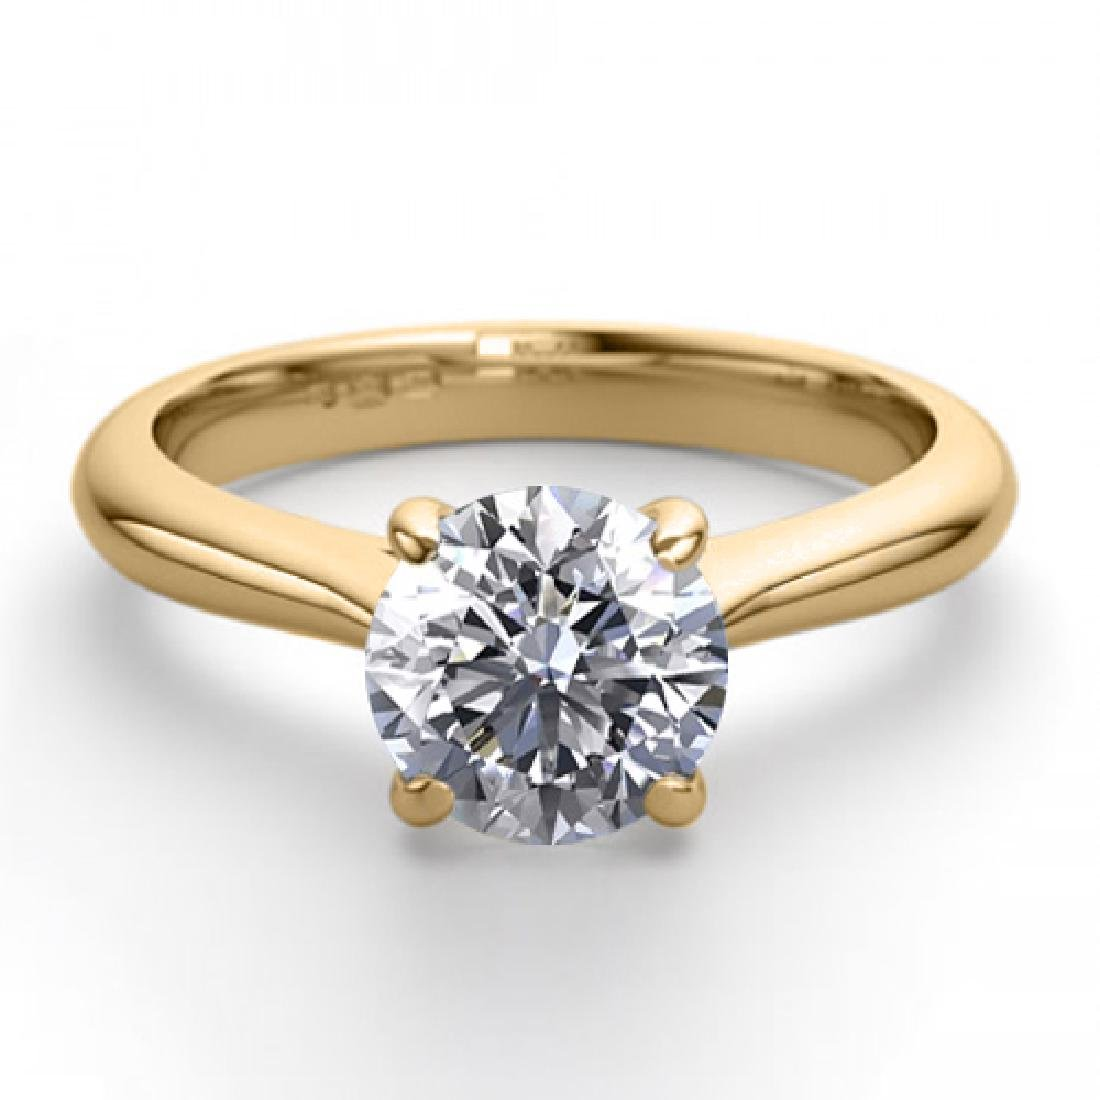 18K Yellow Gold Jewelry 1.52 ctw Natural Diamond